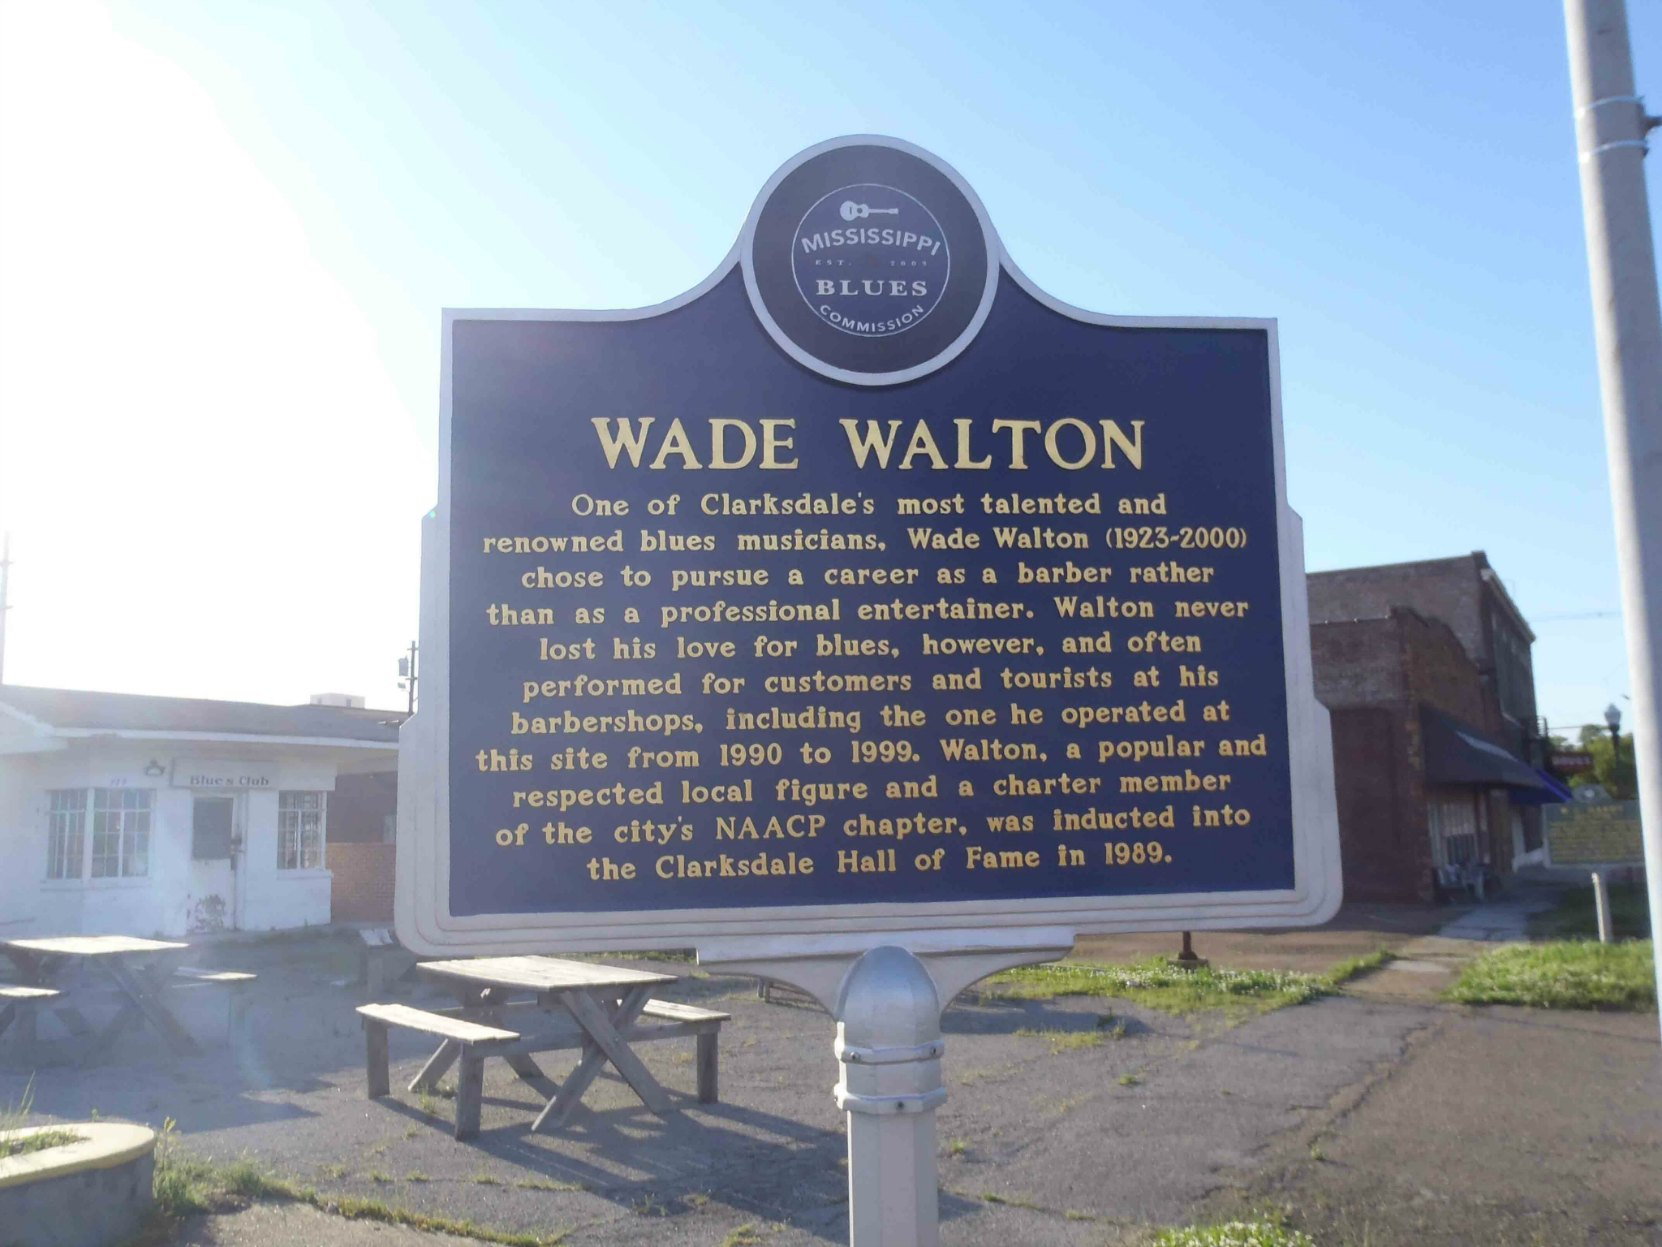 Mississippi Blues Trail marker for Wade Walton, Clarksdale, Mississippi.